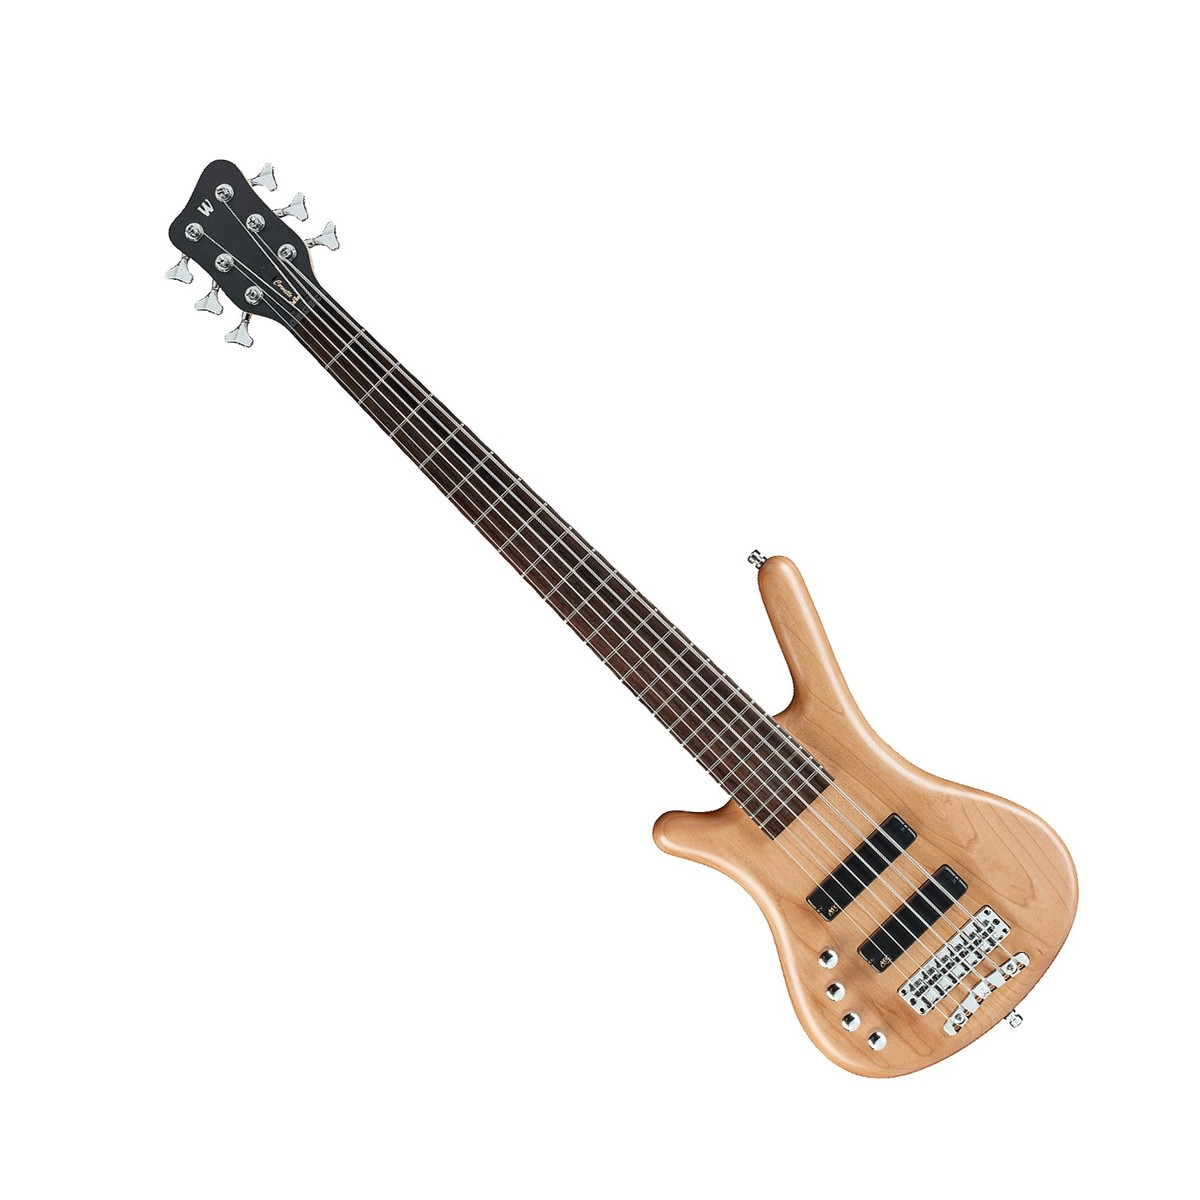 warwick rockbass corvette left handed 6 string bass natural satin box opened at gear4music. Black Bedroom Furniture Sets. Home Design Ideas